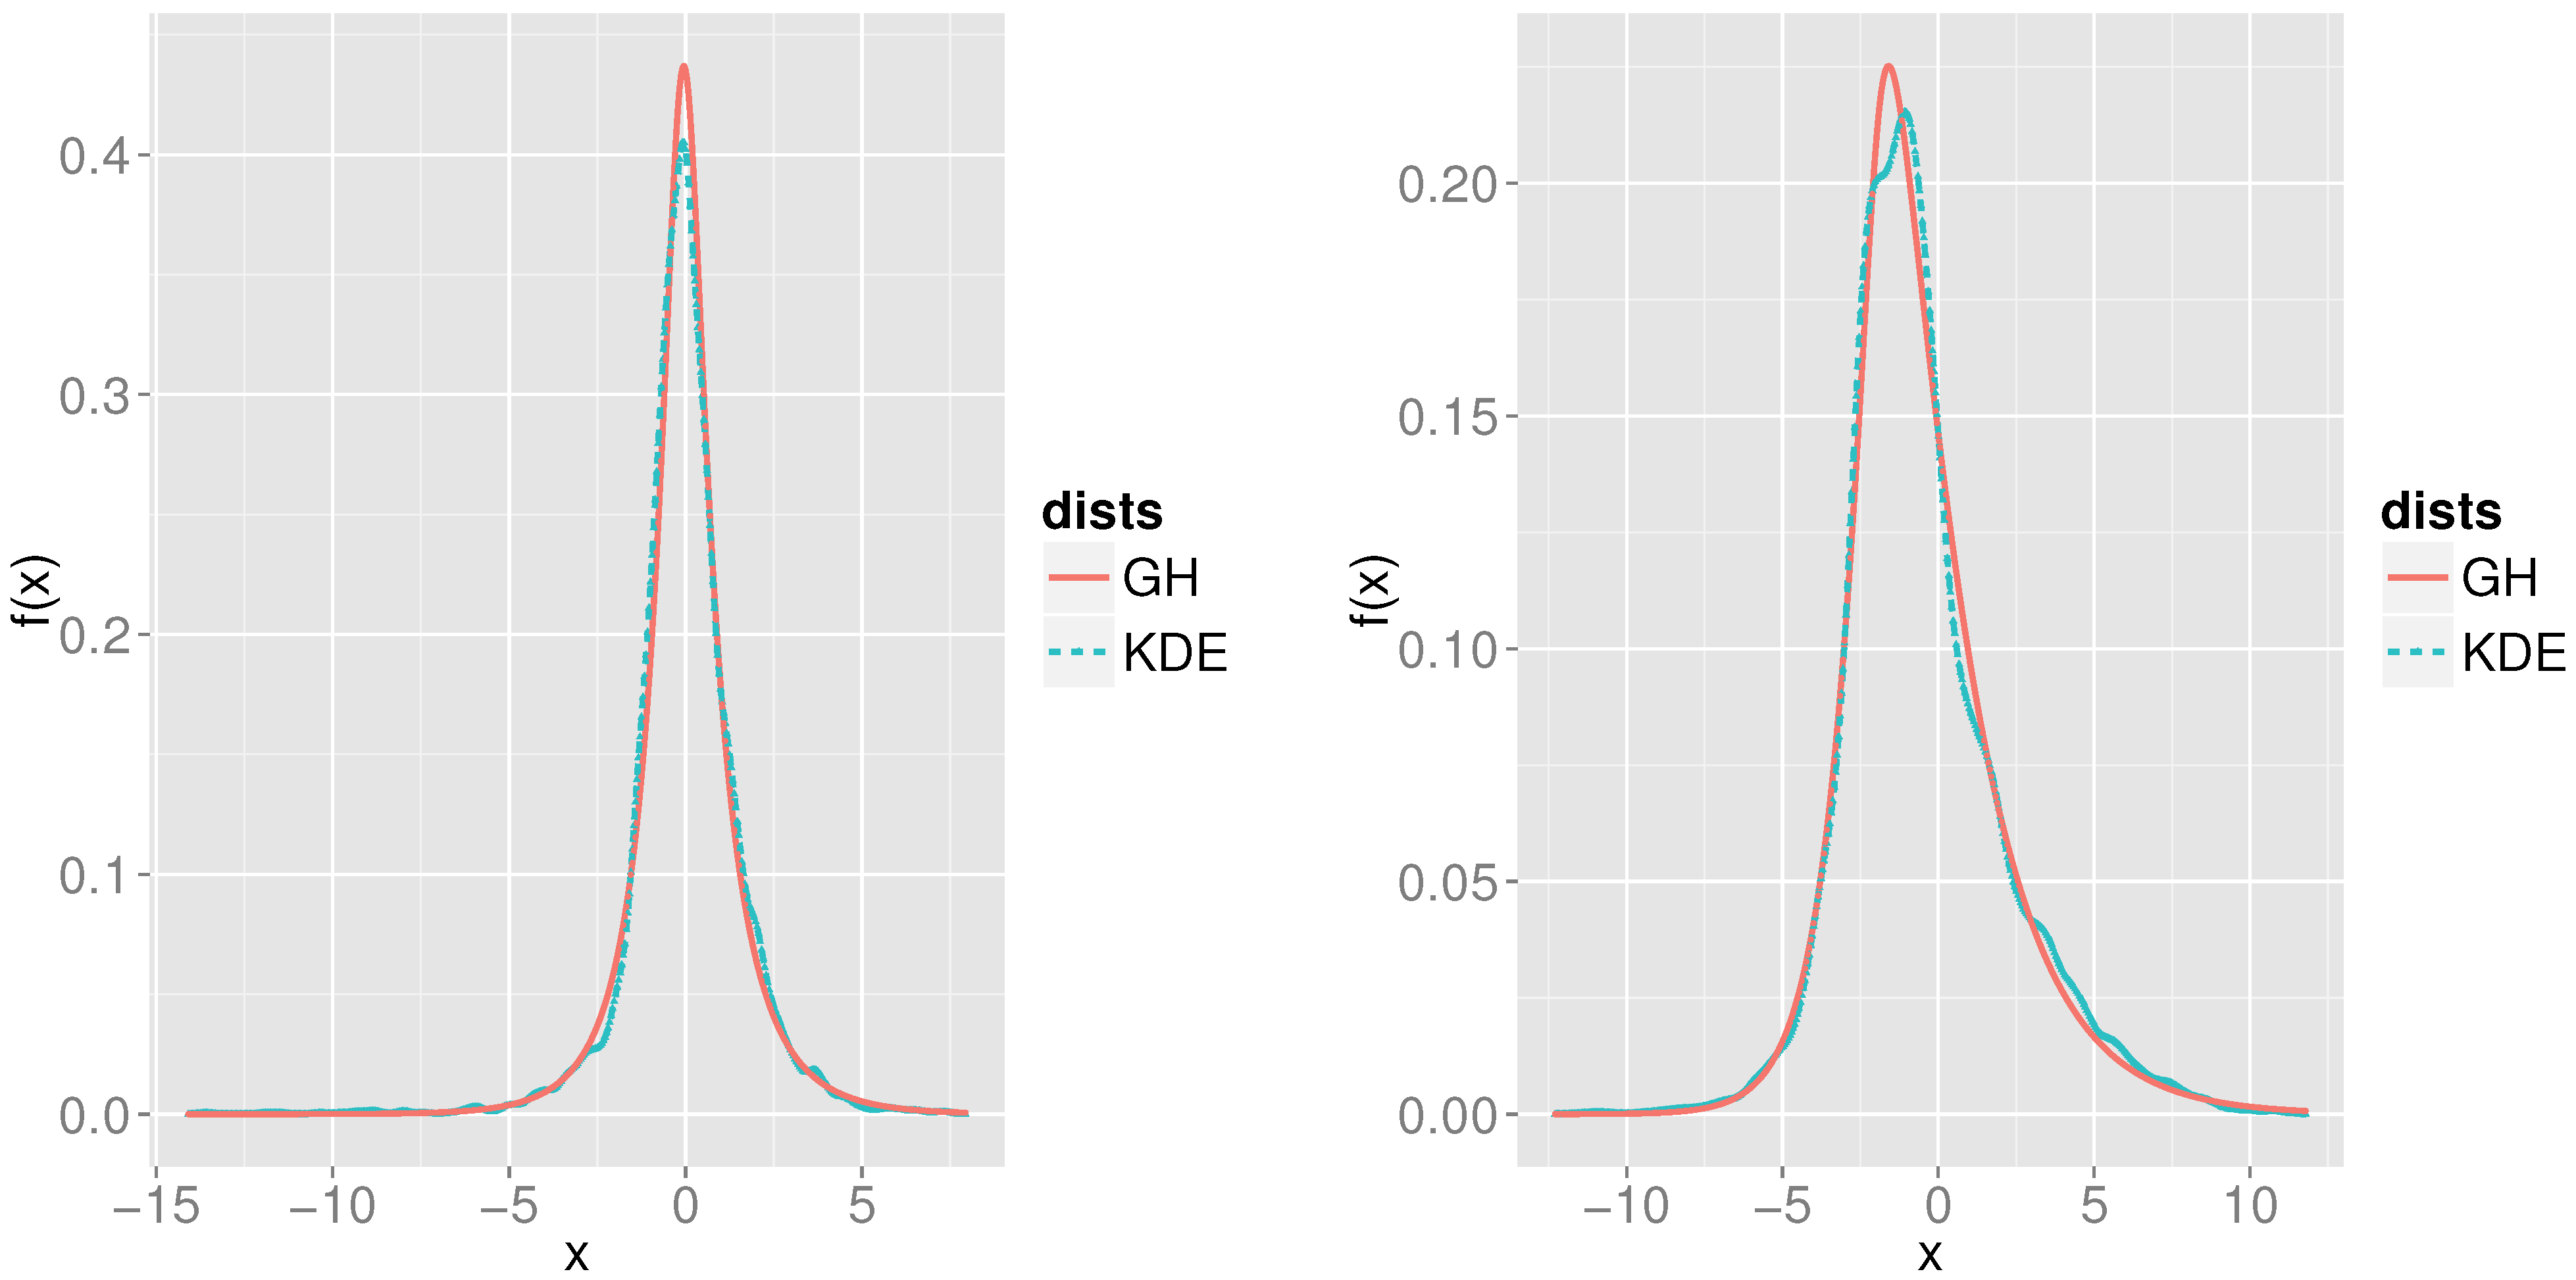 normal distribution and strong markov property Markov processes in isabelle/hol  it is the normal distribution with mean xand variance ˙ from this follows  their strong markov property for the strong .